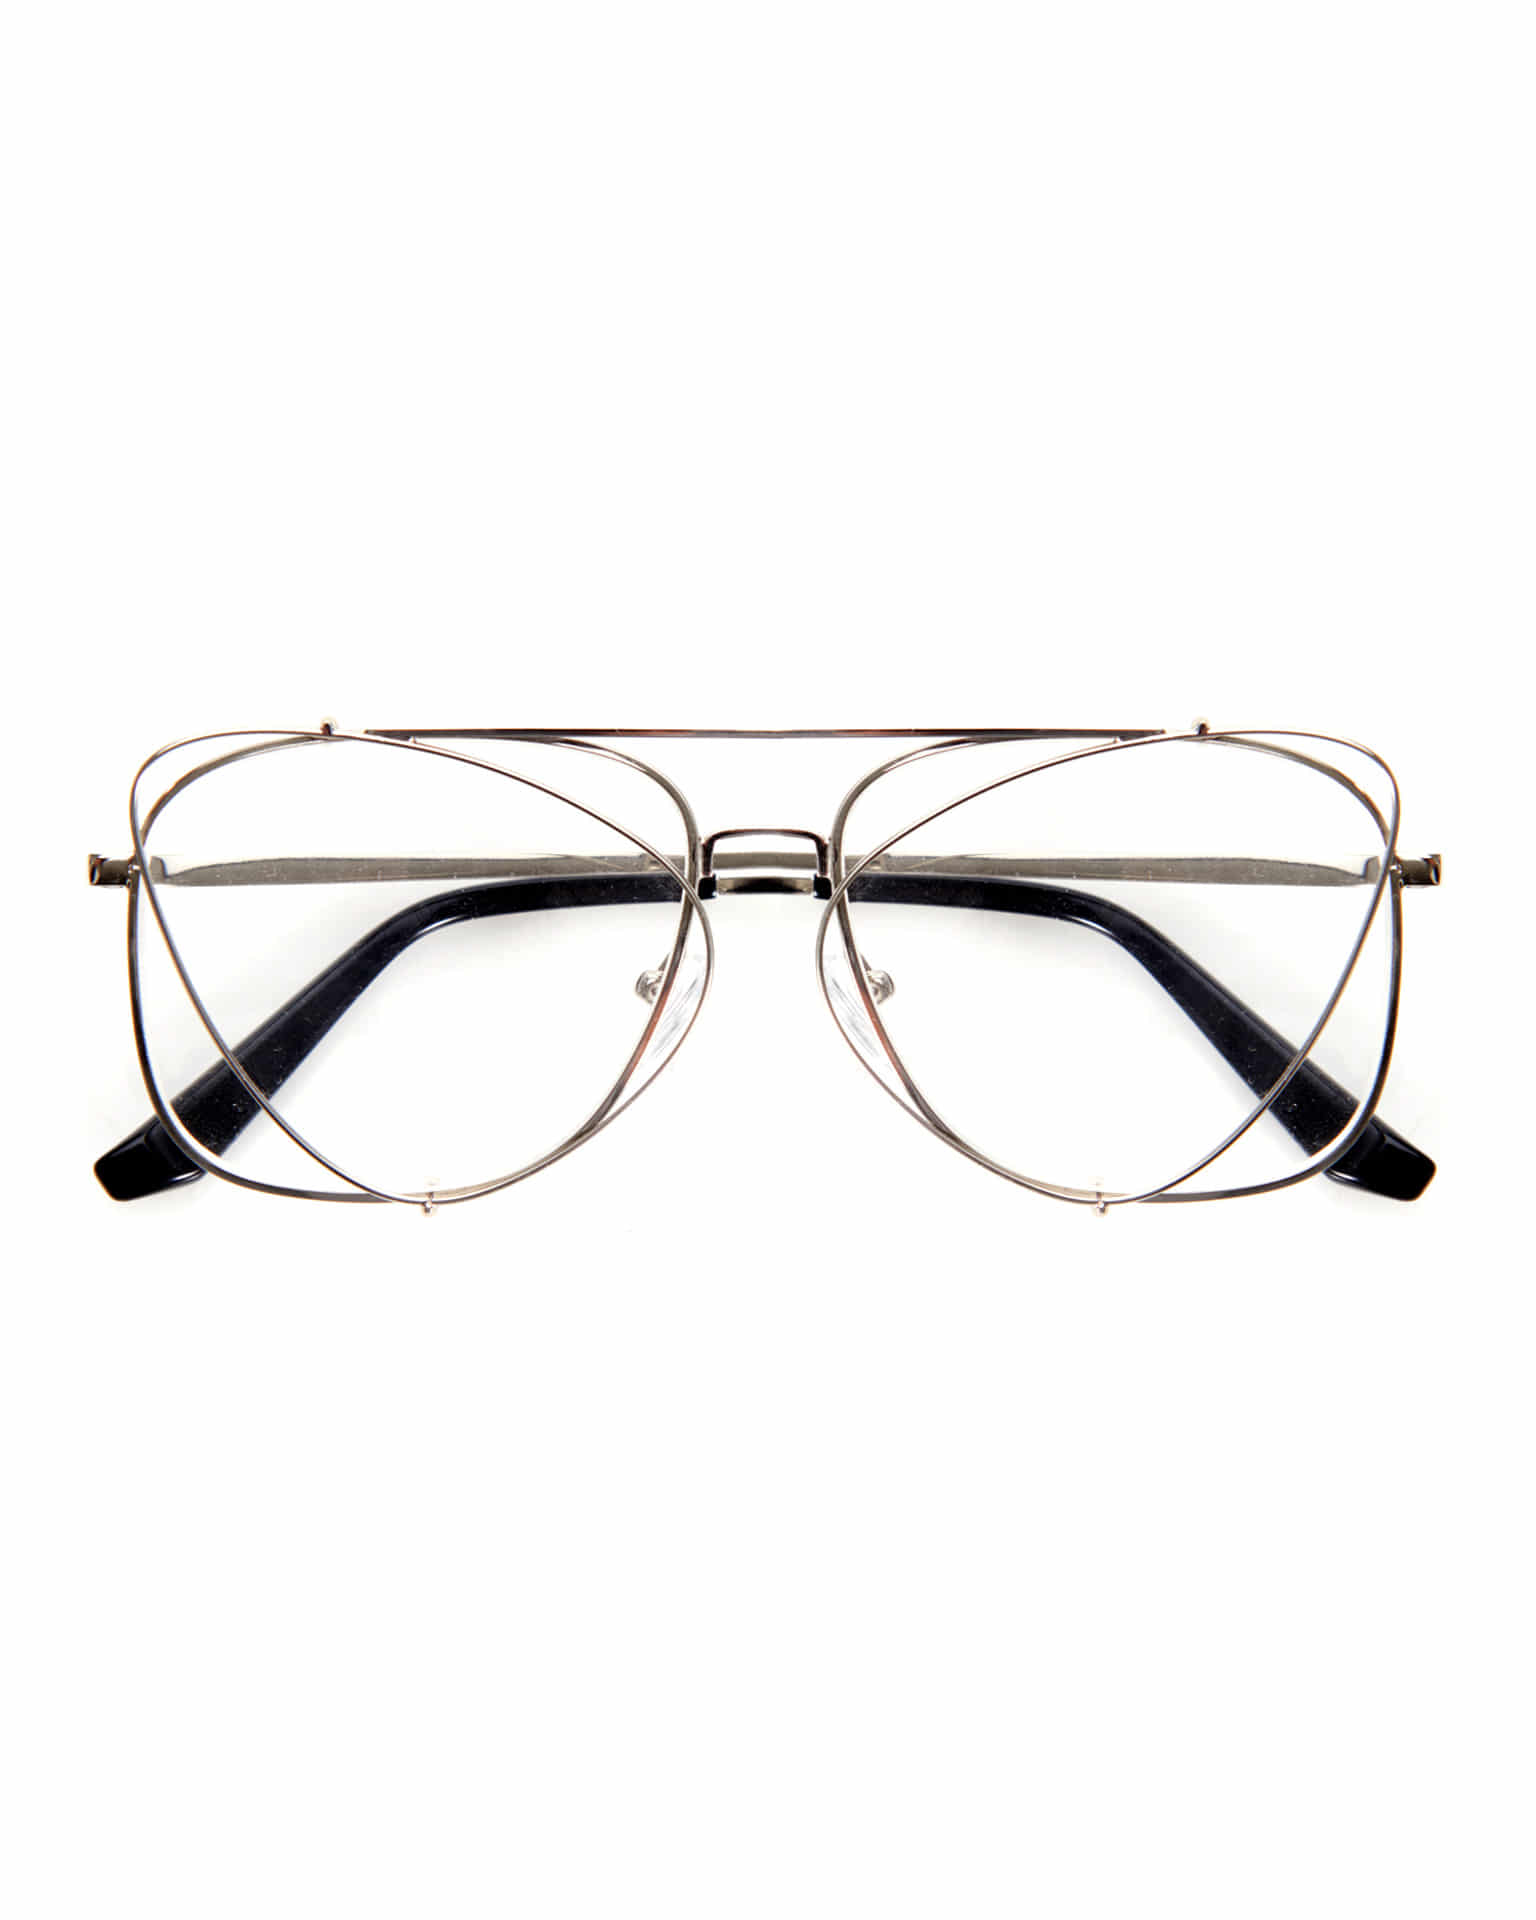 METAL CLIP-ON EYEGLASSES